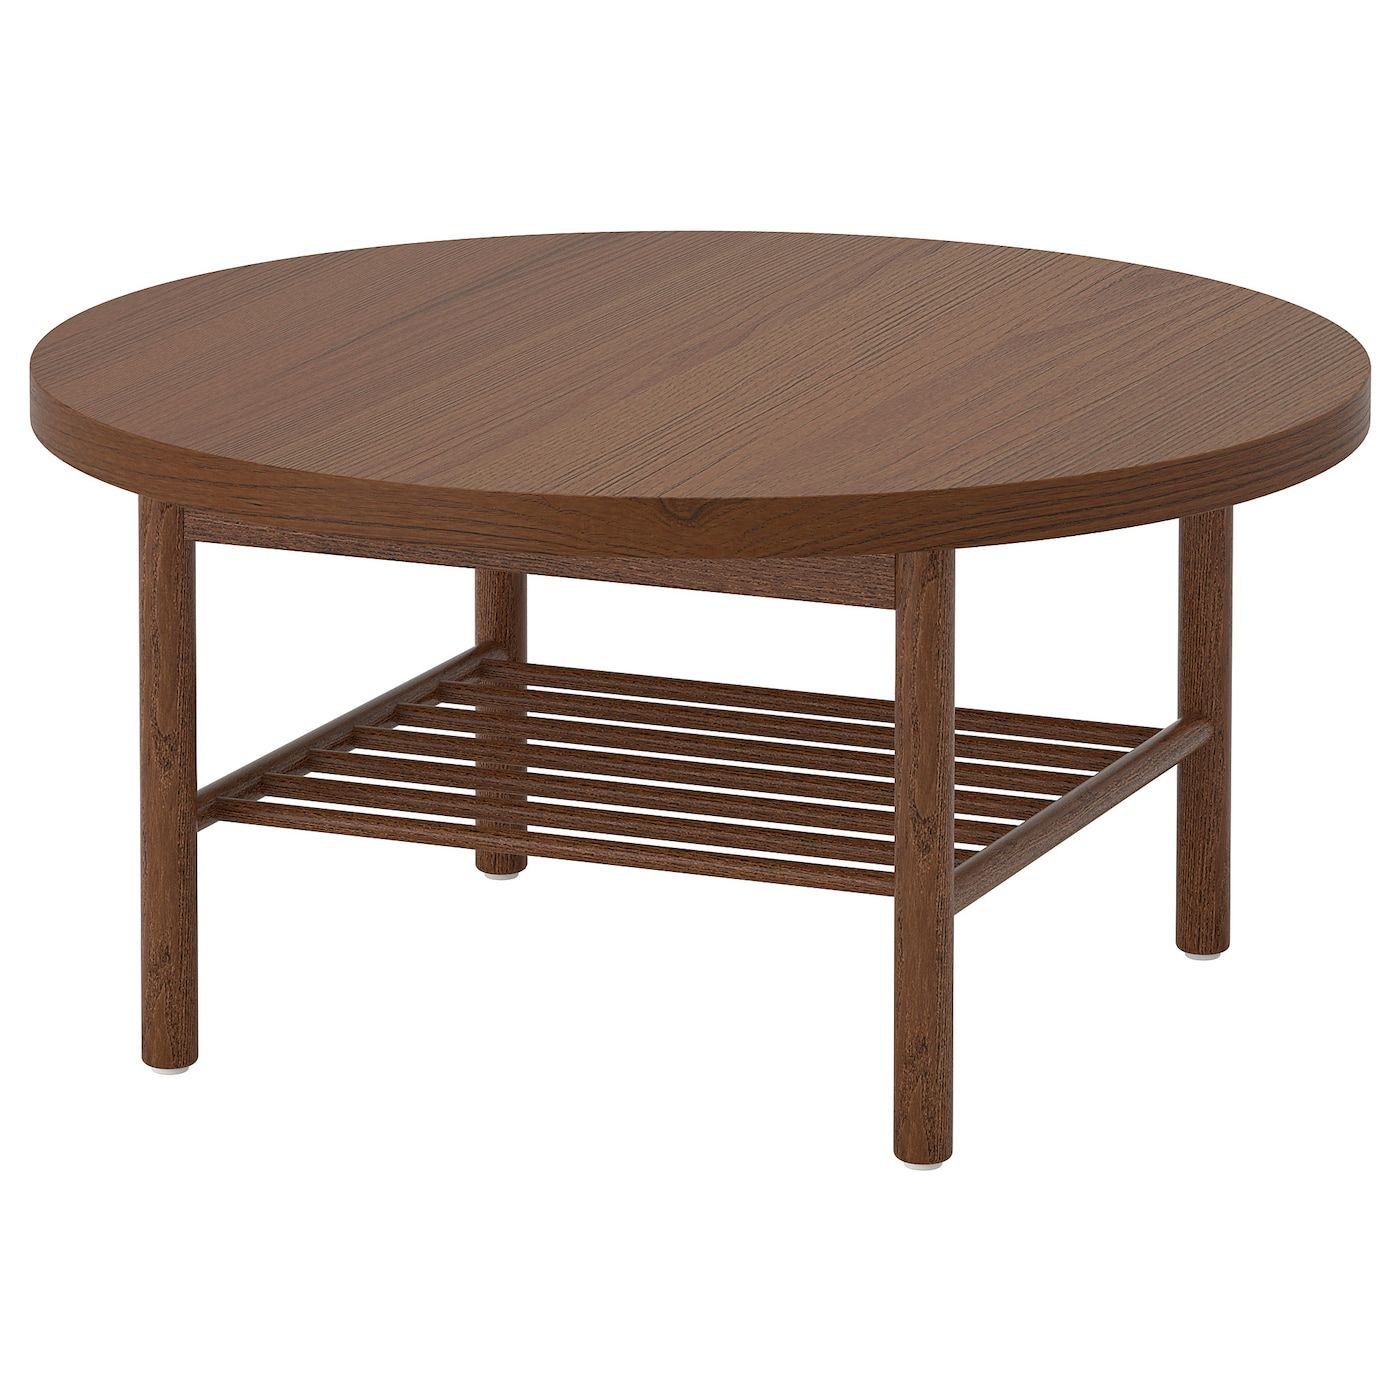 Listerby Coffee Table Brown 35 3 8 Ikea Coffee Table Brown Coffee Table Coffee Table White [ 1400 x 1400 Pixel ]